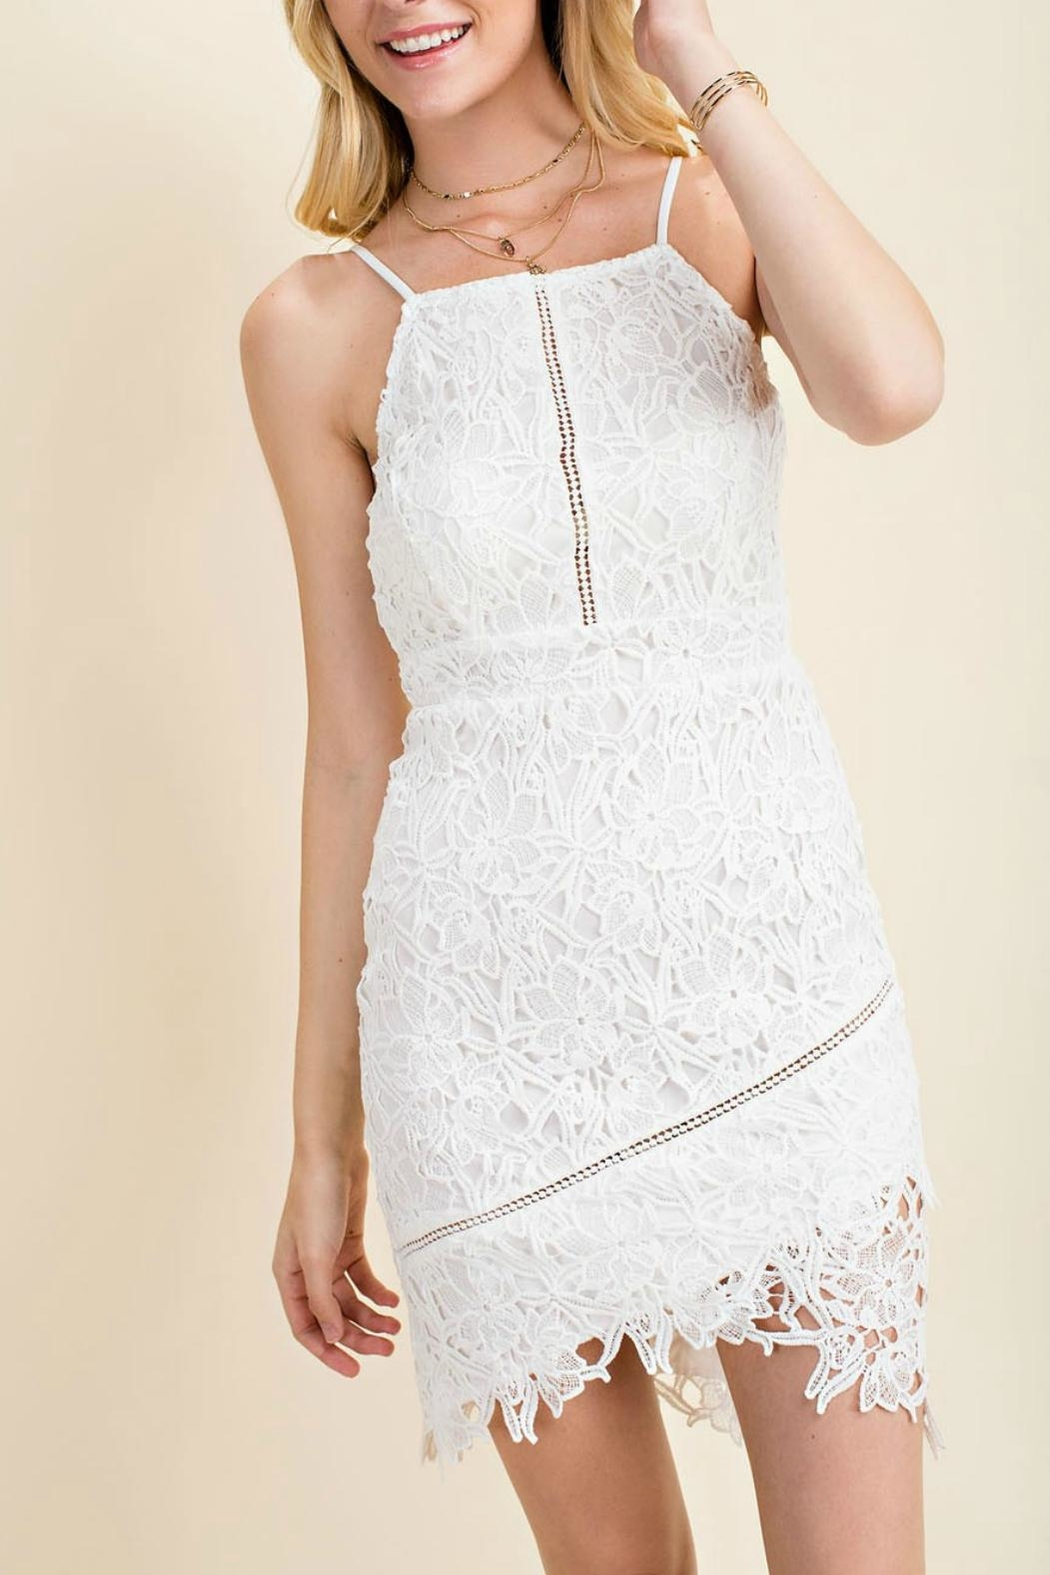 Pretty Little Things Squared Lace Dress - Main Image